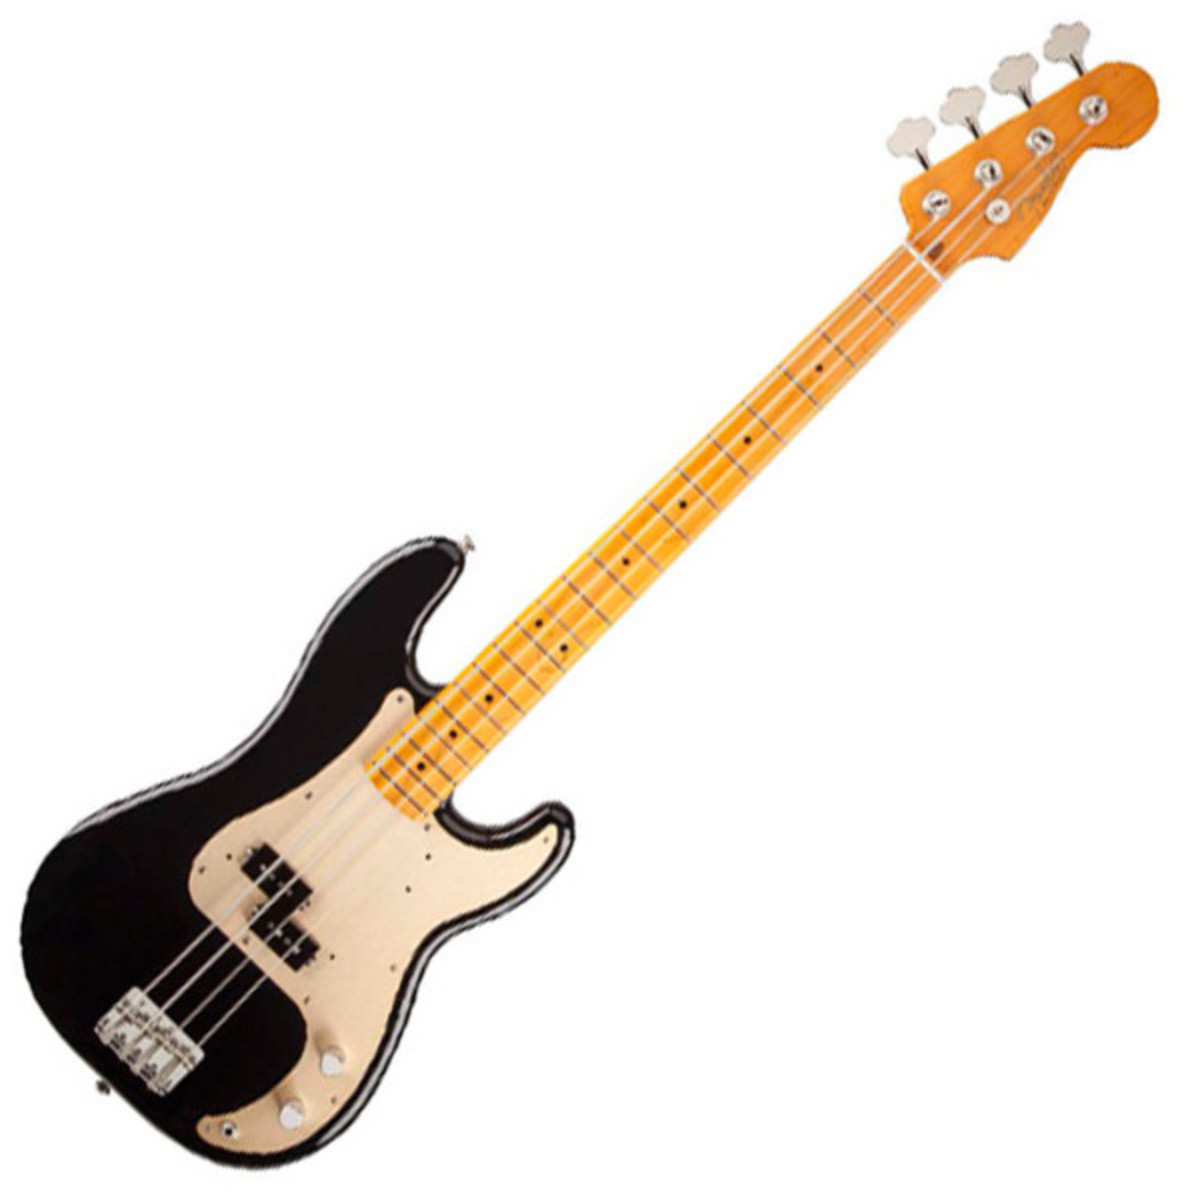 fender precision bass 50s lacquer maple fingerboard black at gear4music. Black Bedroom Furniture Sets. Home Design Ideas